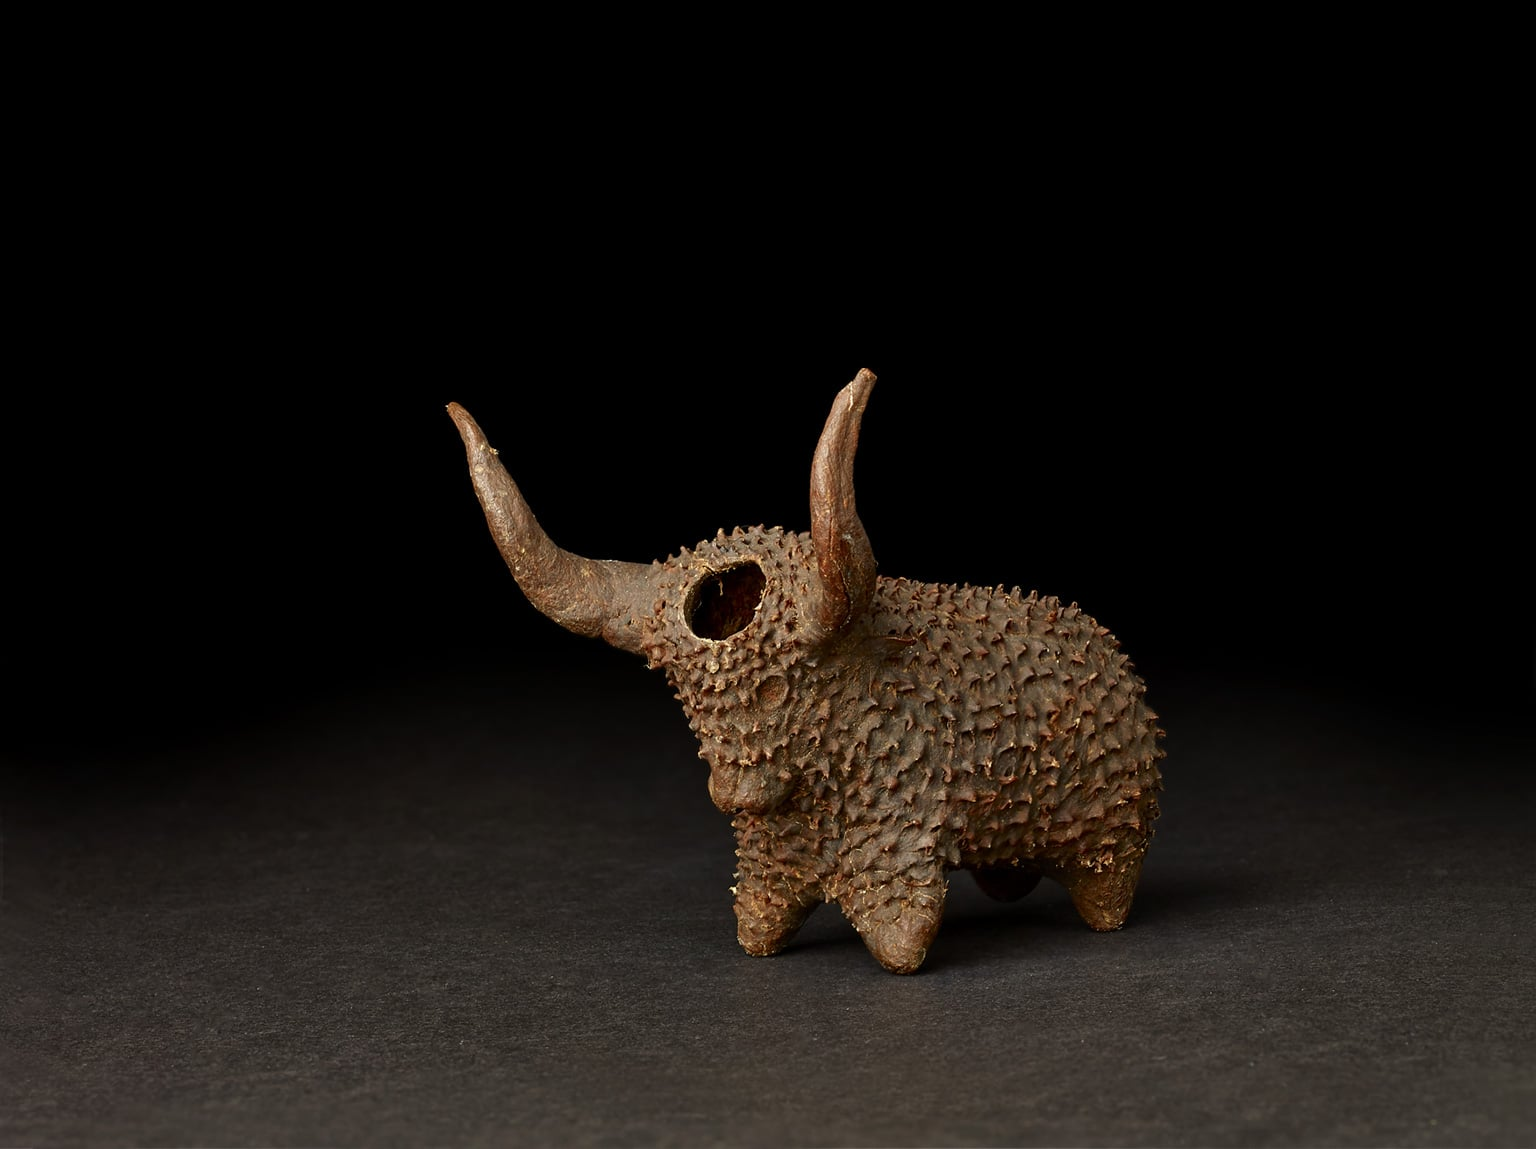 Snuffbox in the shape of an ox, acquired in South Africa, Xhosa made, late 19th century